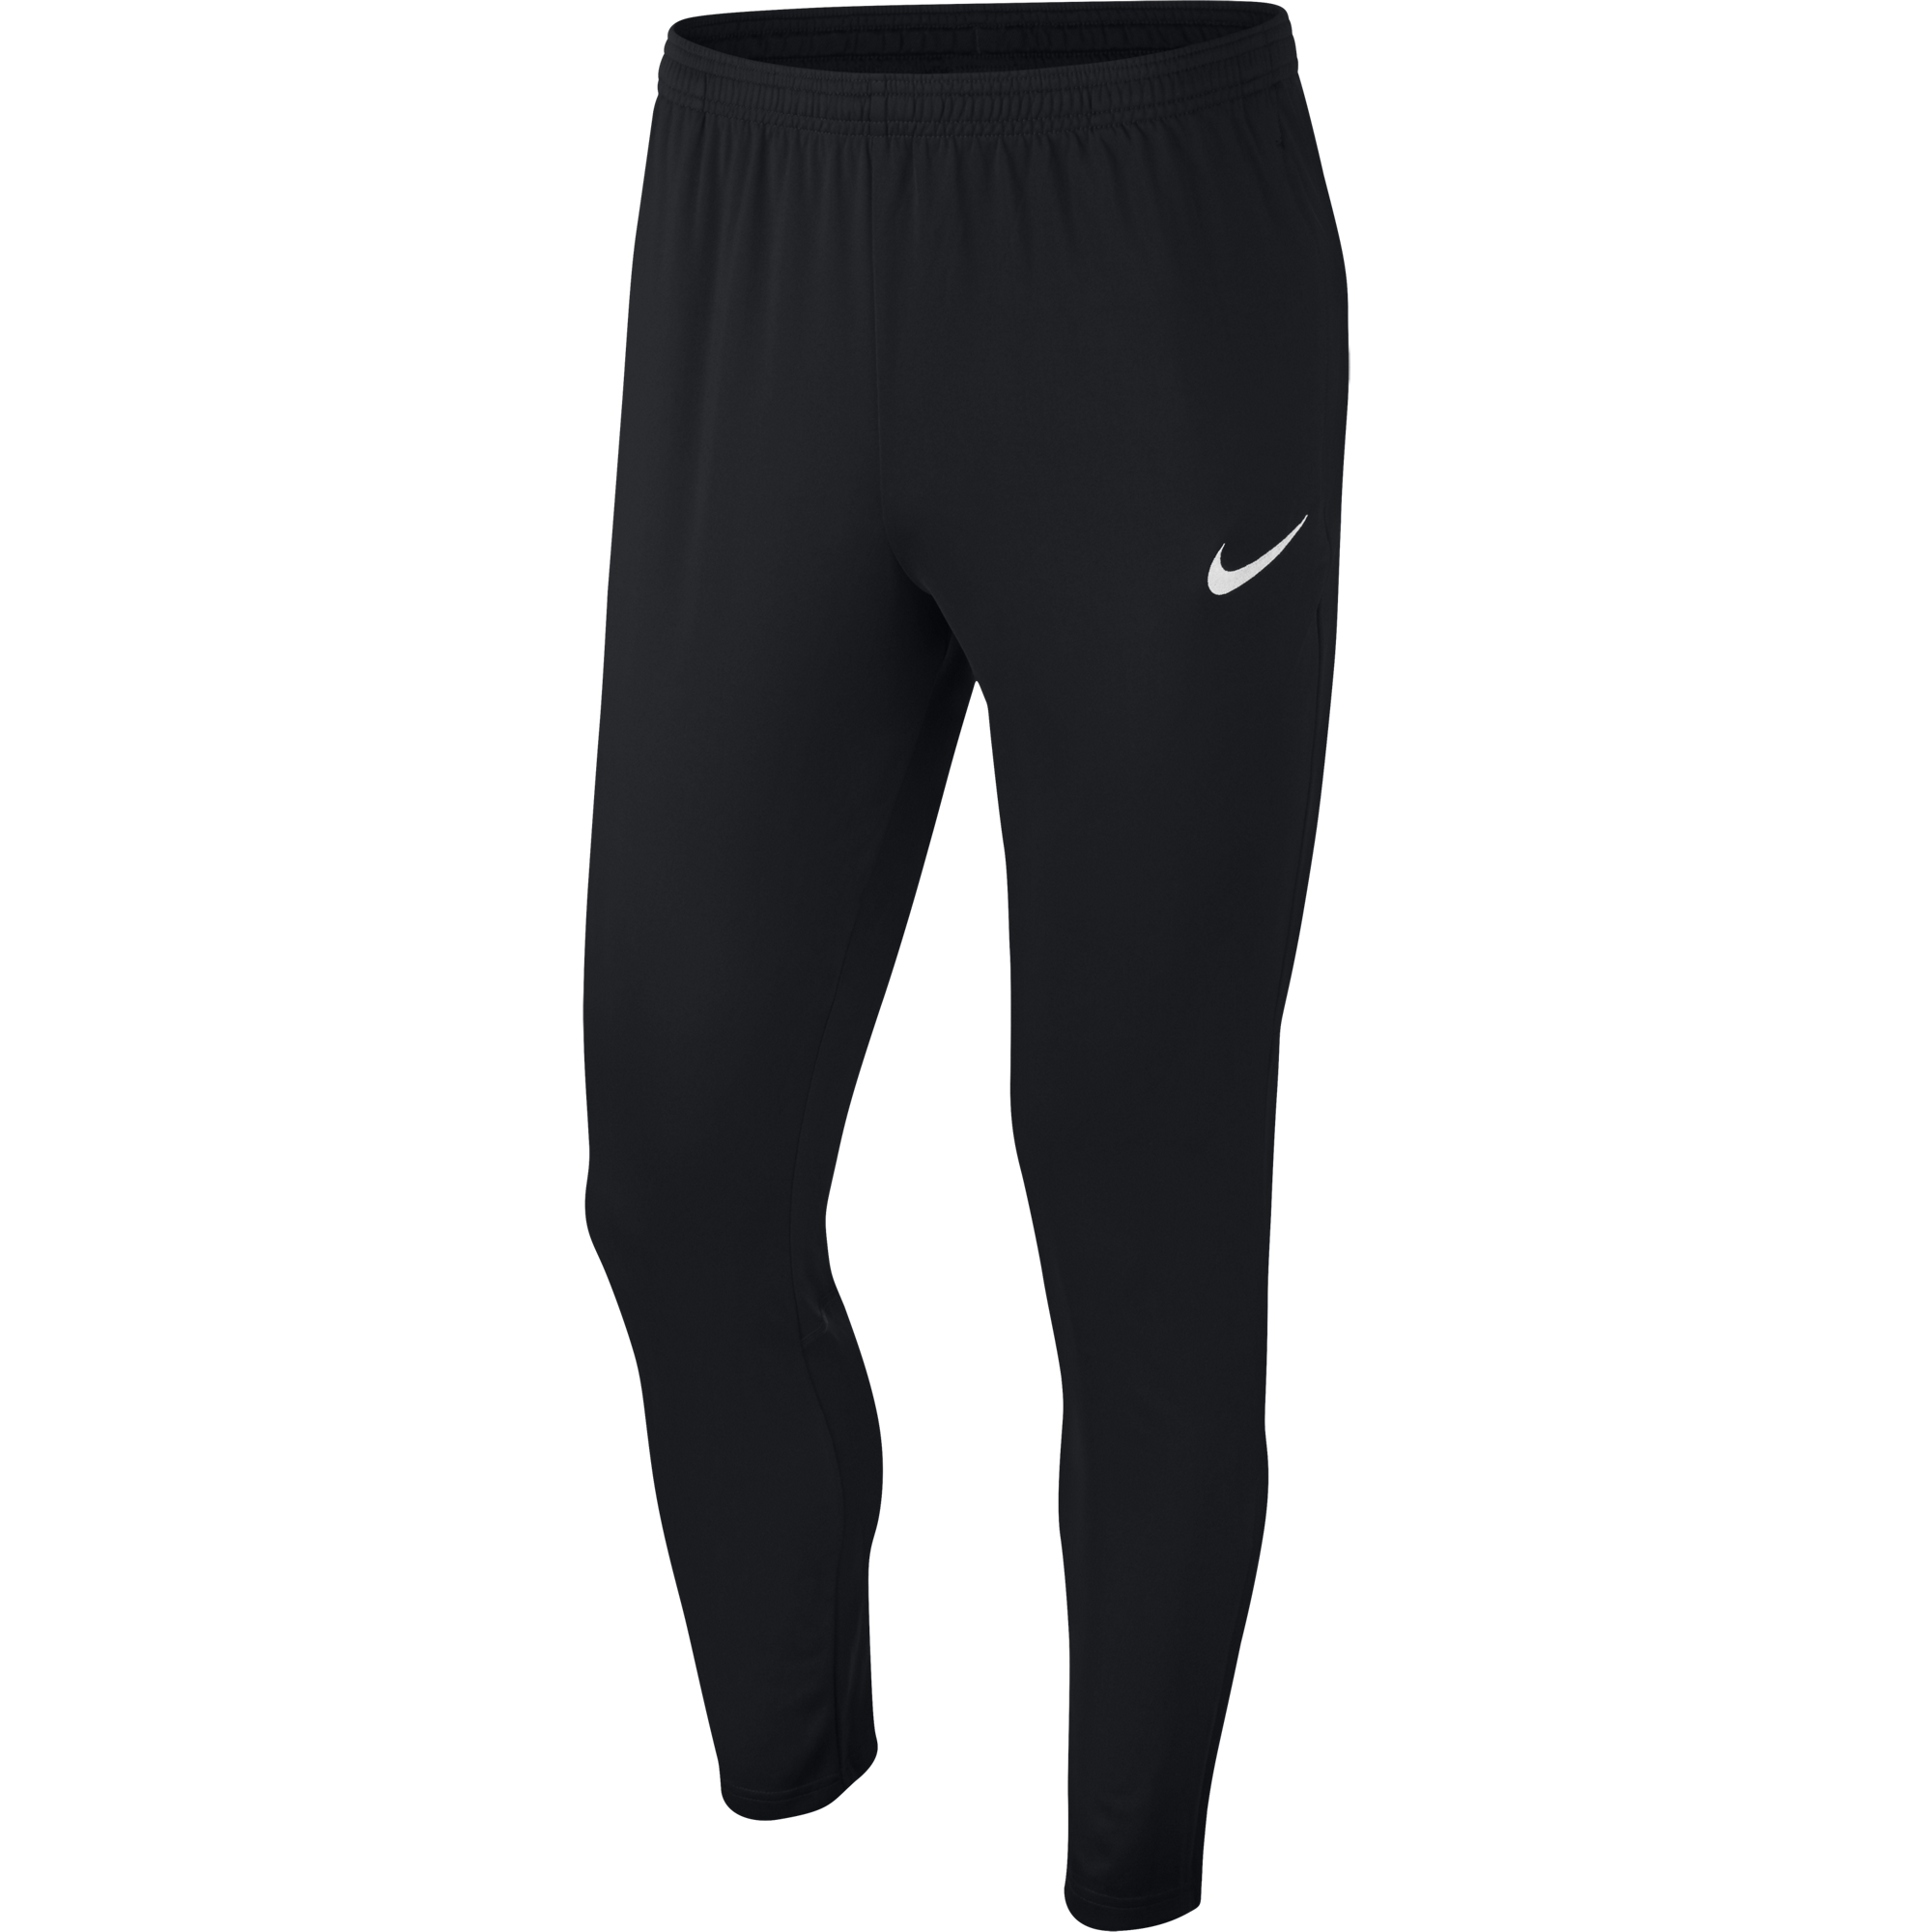 9d6608a894bc ... Training Wear NEW Nike Academy 18 Pant in Black. Sale!   